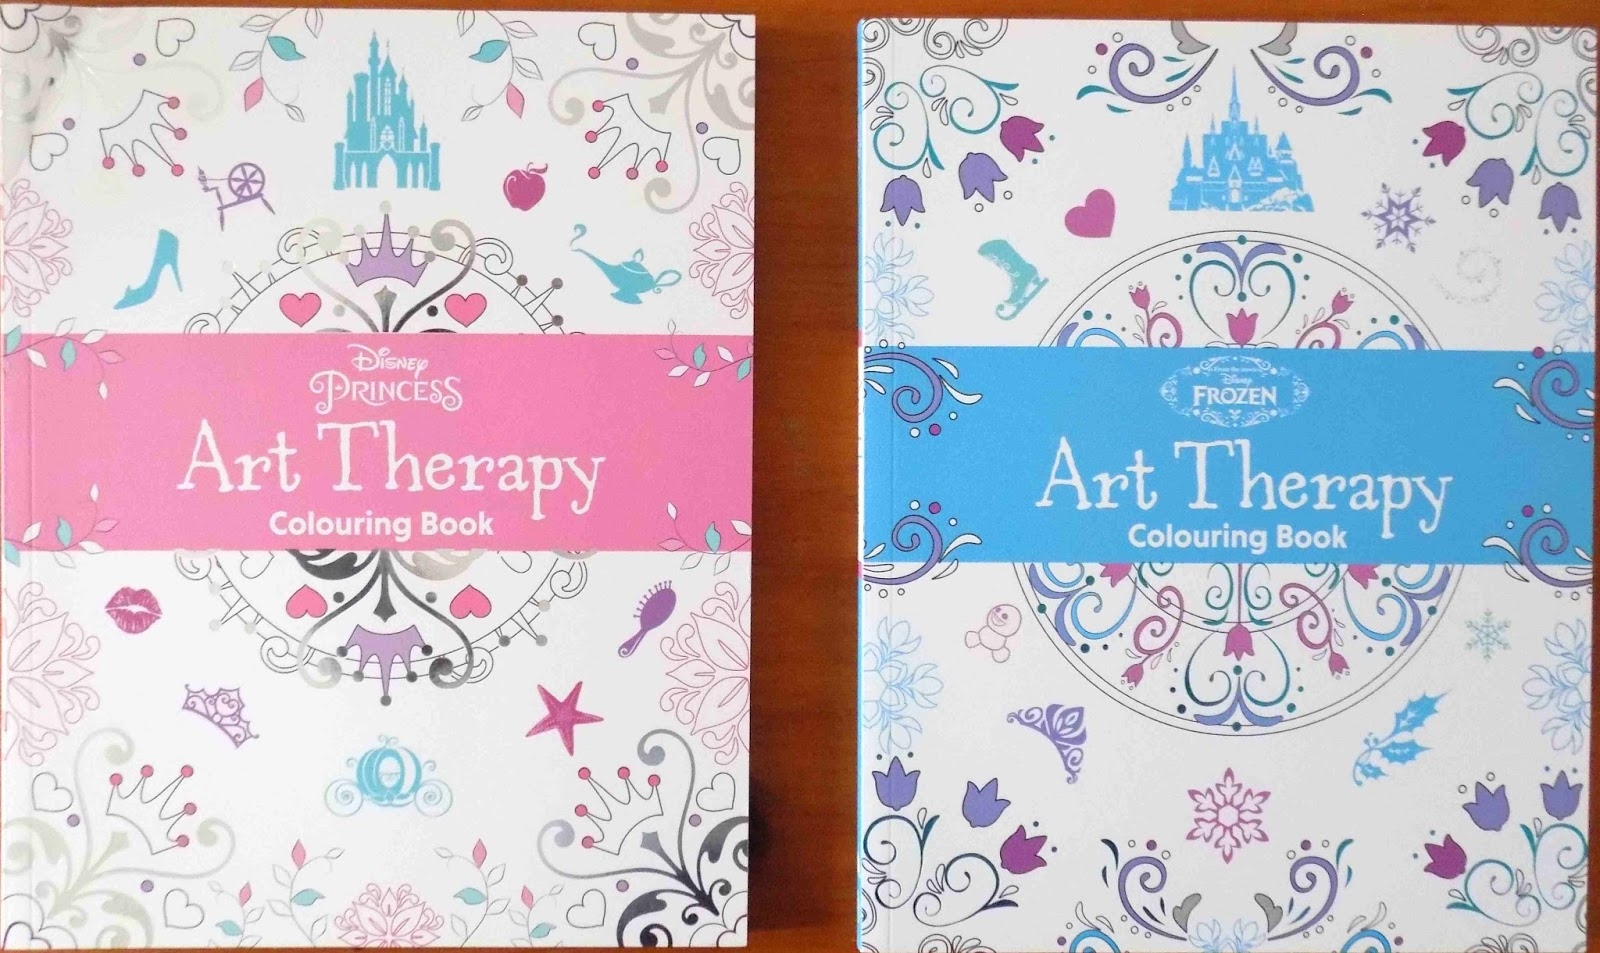 Disney princess art therapy colouring book - Disney Art Therapy Colouring Books Review As Book Buddies We Re Always Excited To See Which Books Parragon Will Have Selected For Us To Review In Our